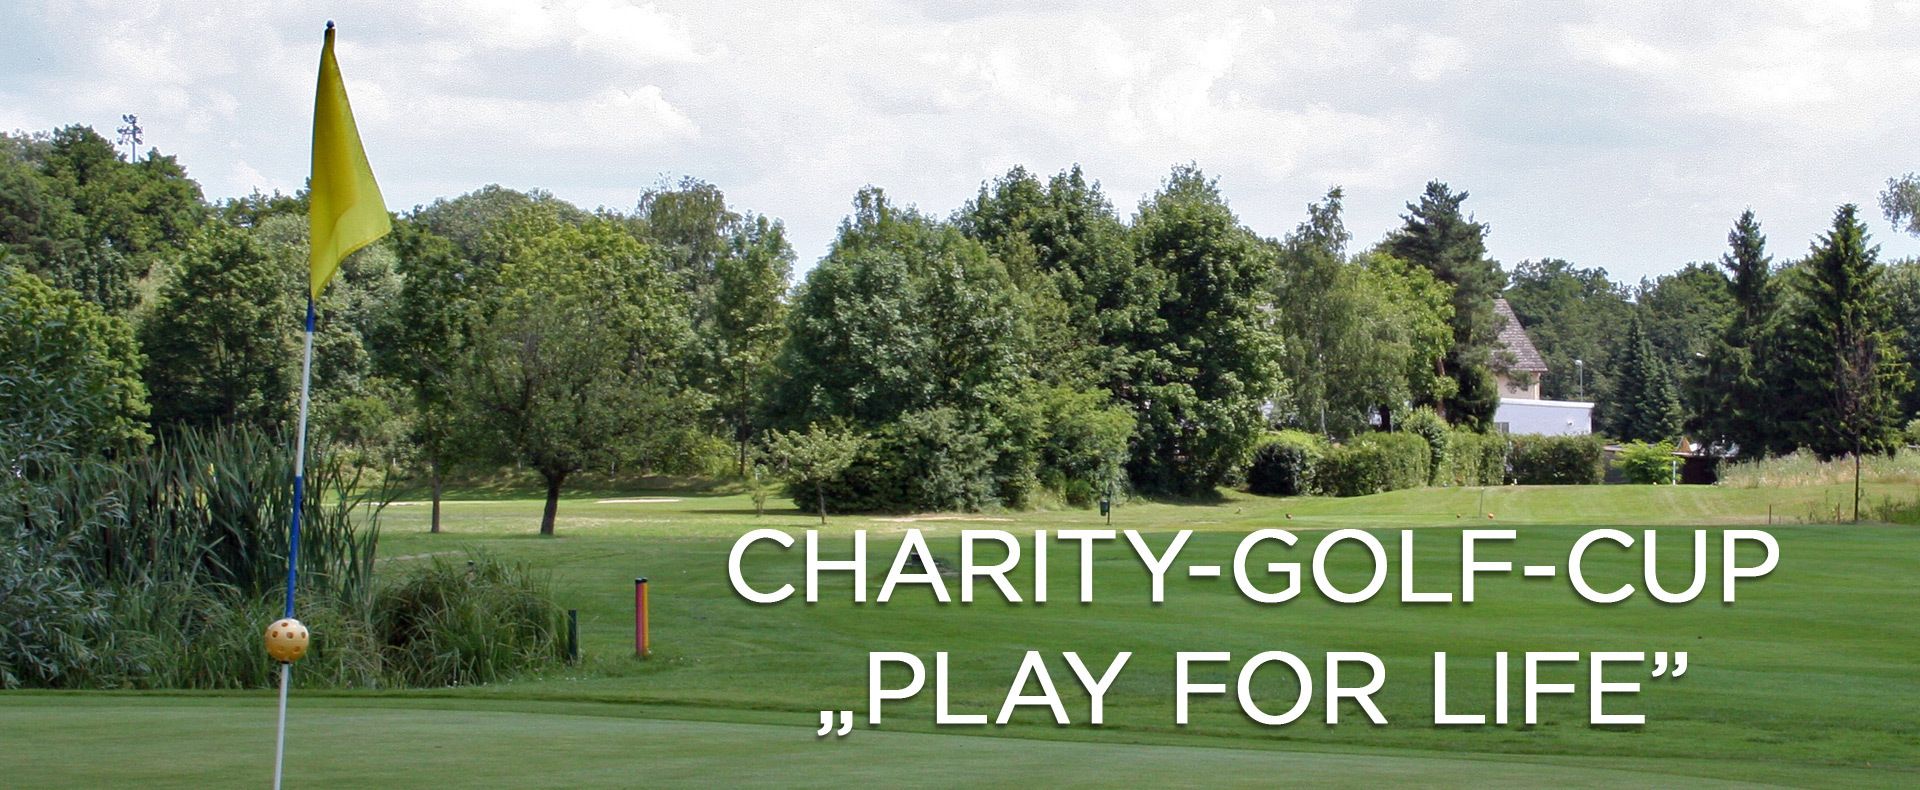 19. CHARITY-GOLF-CUP (© Great Lengths)